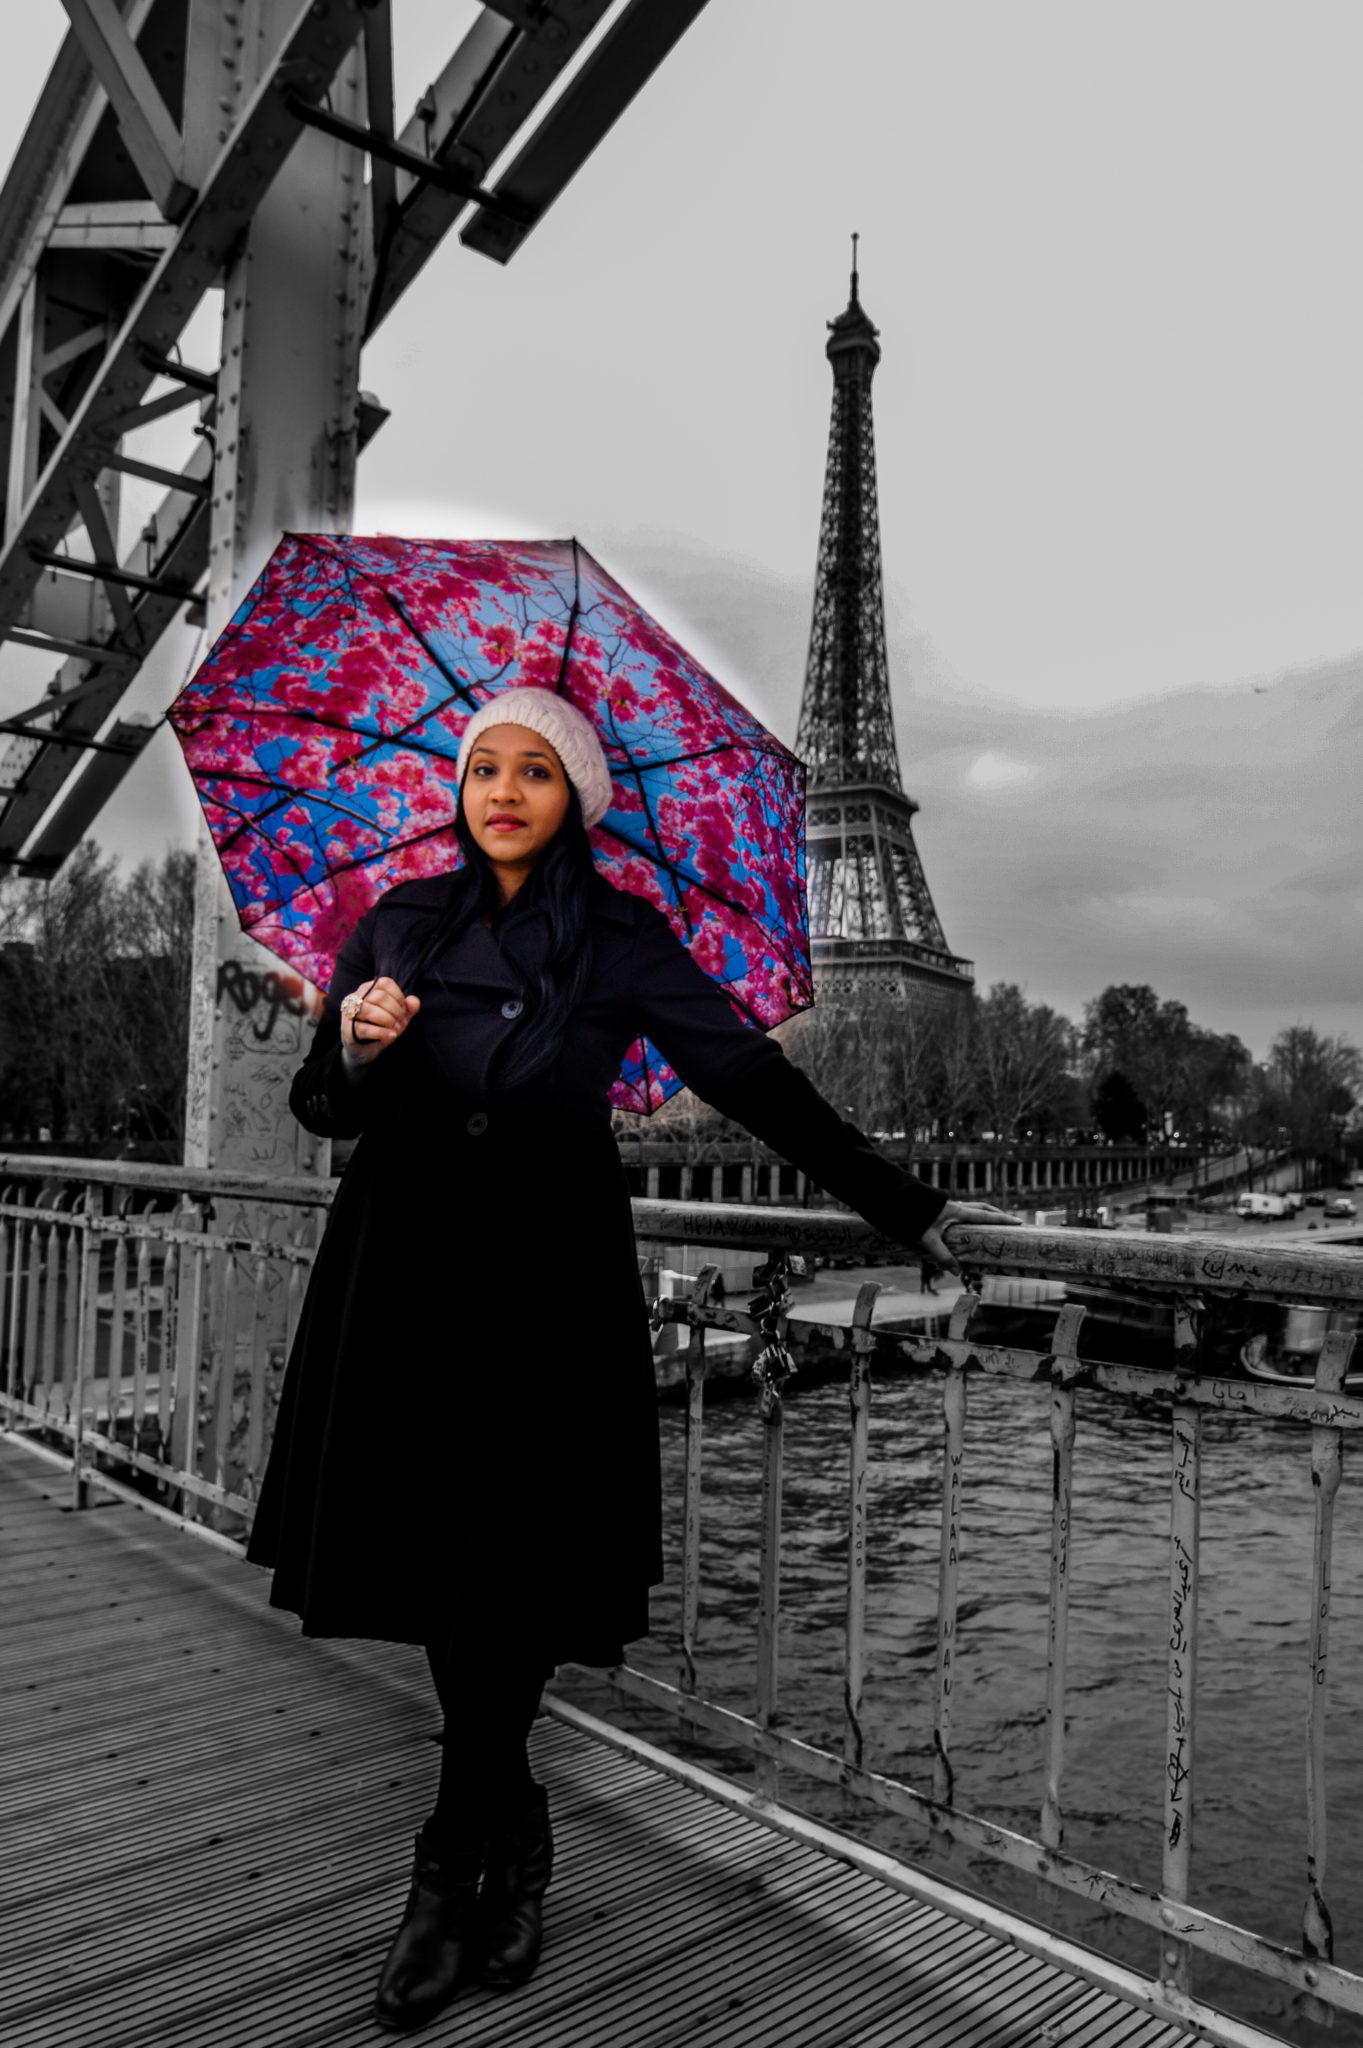 Hemaposesesvalises_Happysweeds_Cherry_Umbrella_Tour_Eiffel_winter_paris_blog_mode_blanckwhite